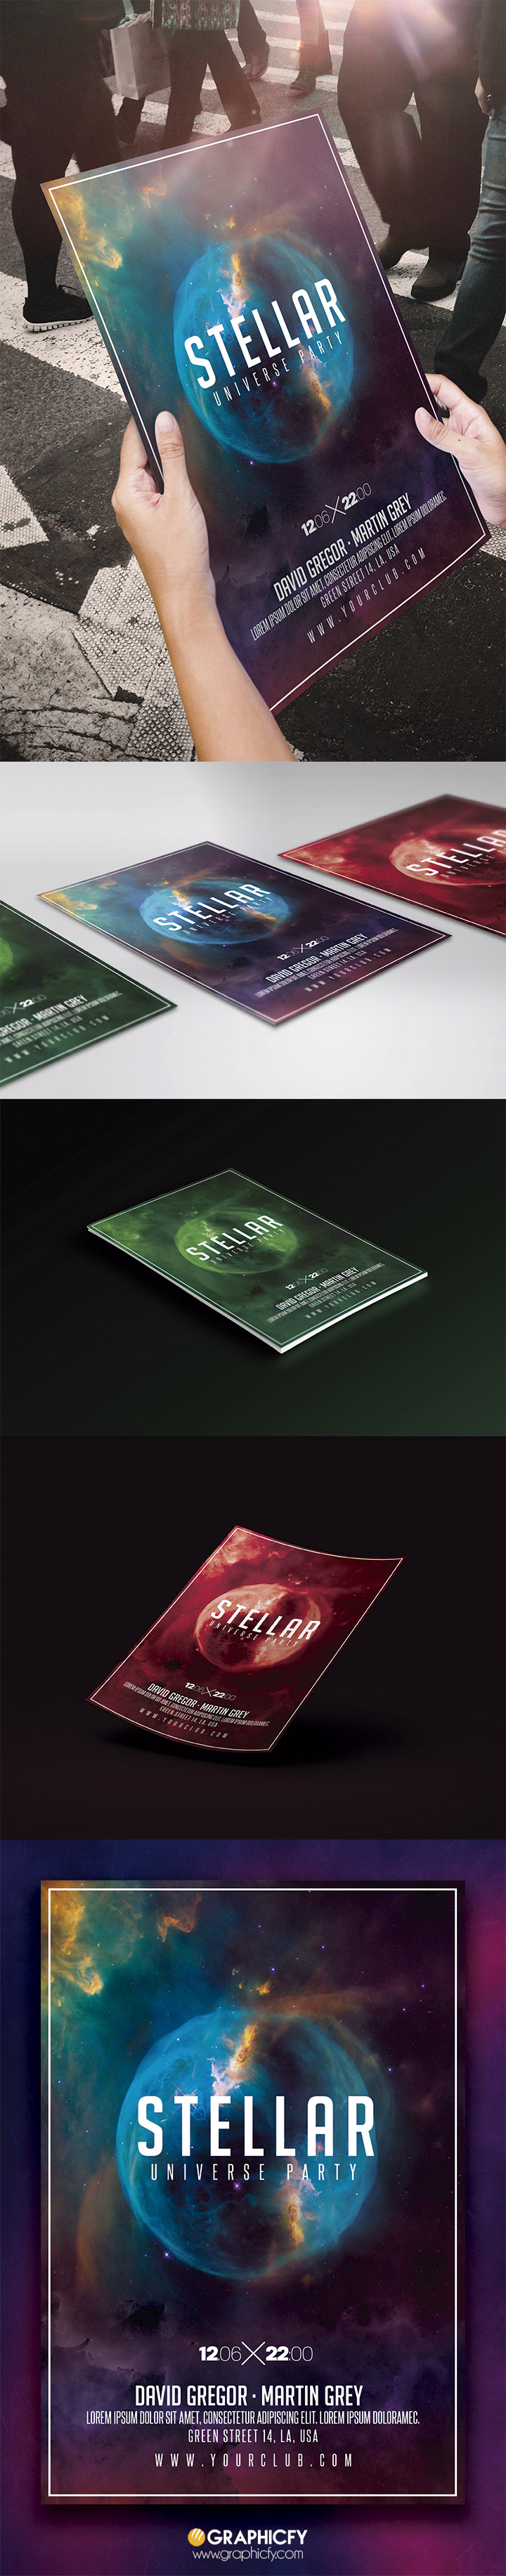 Nightclub Space Flyer Template PSD